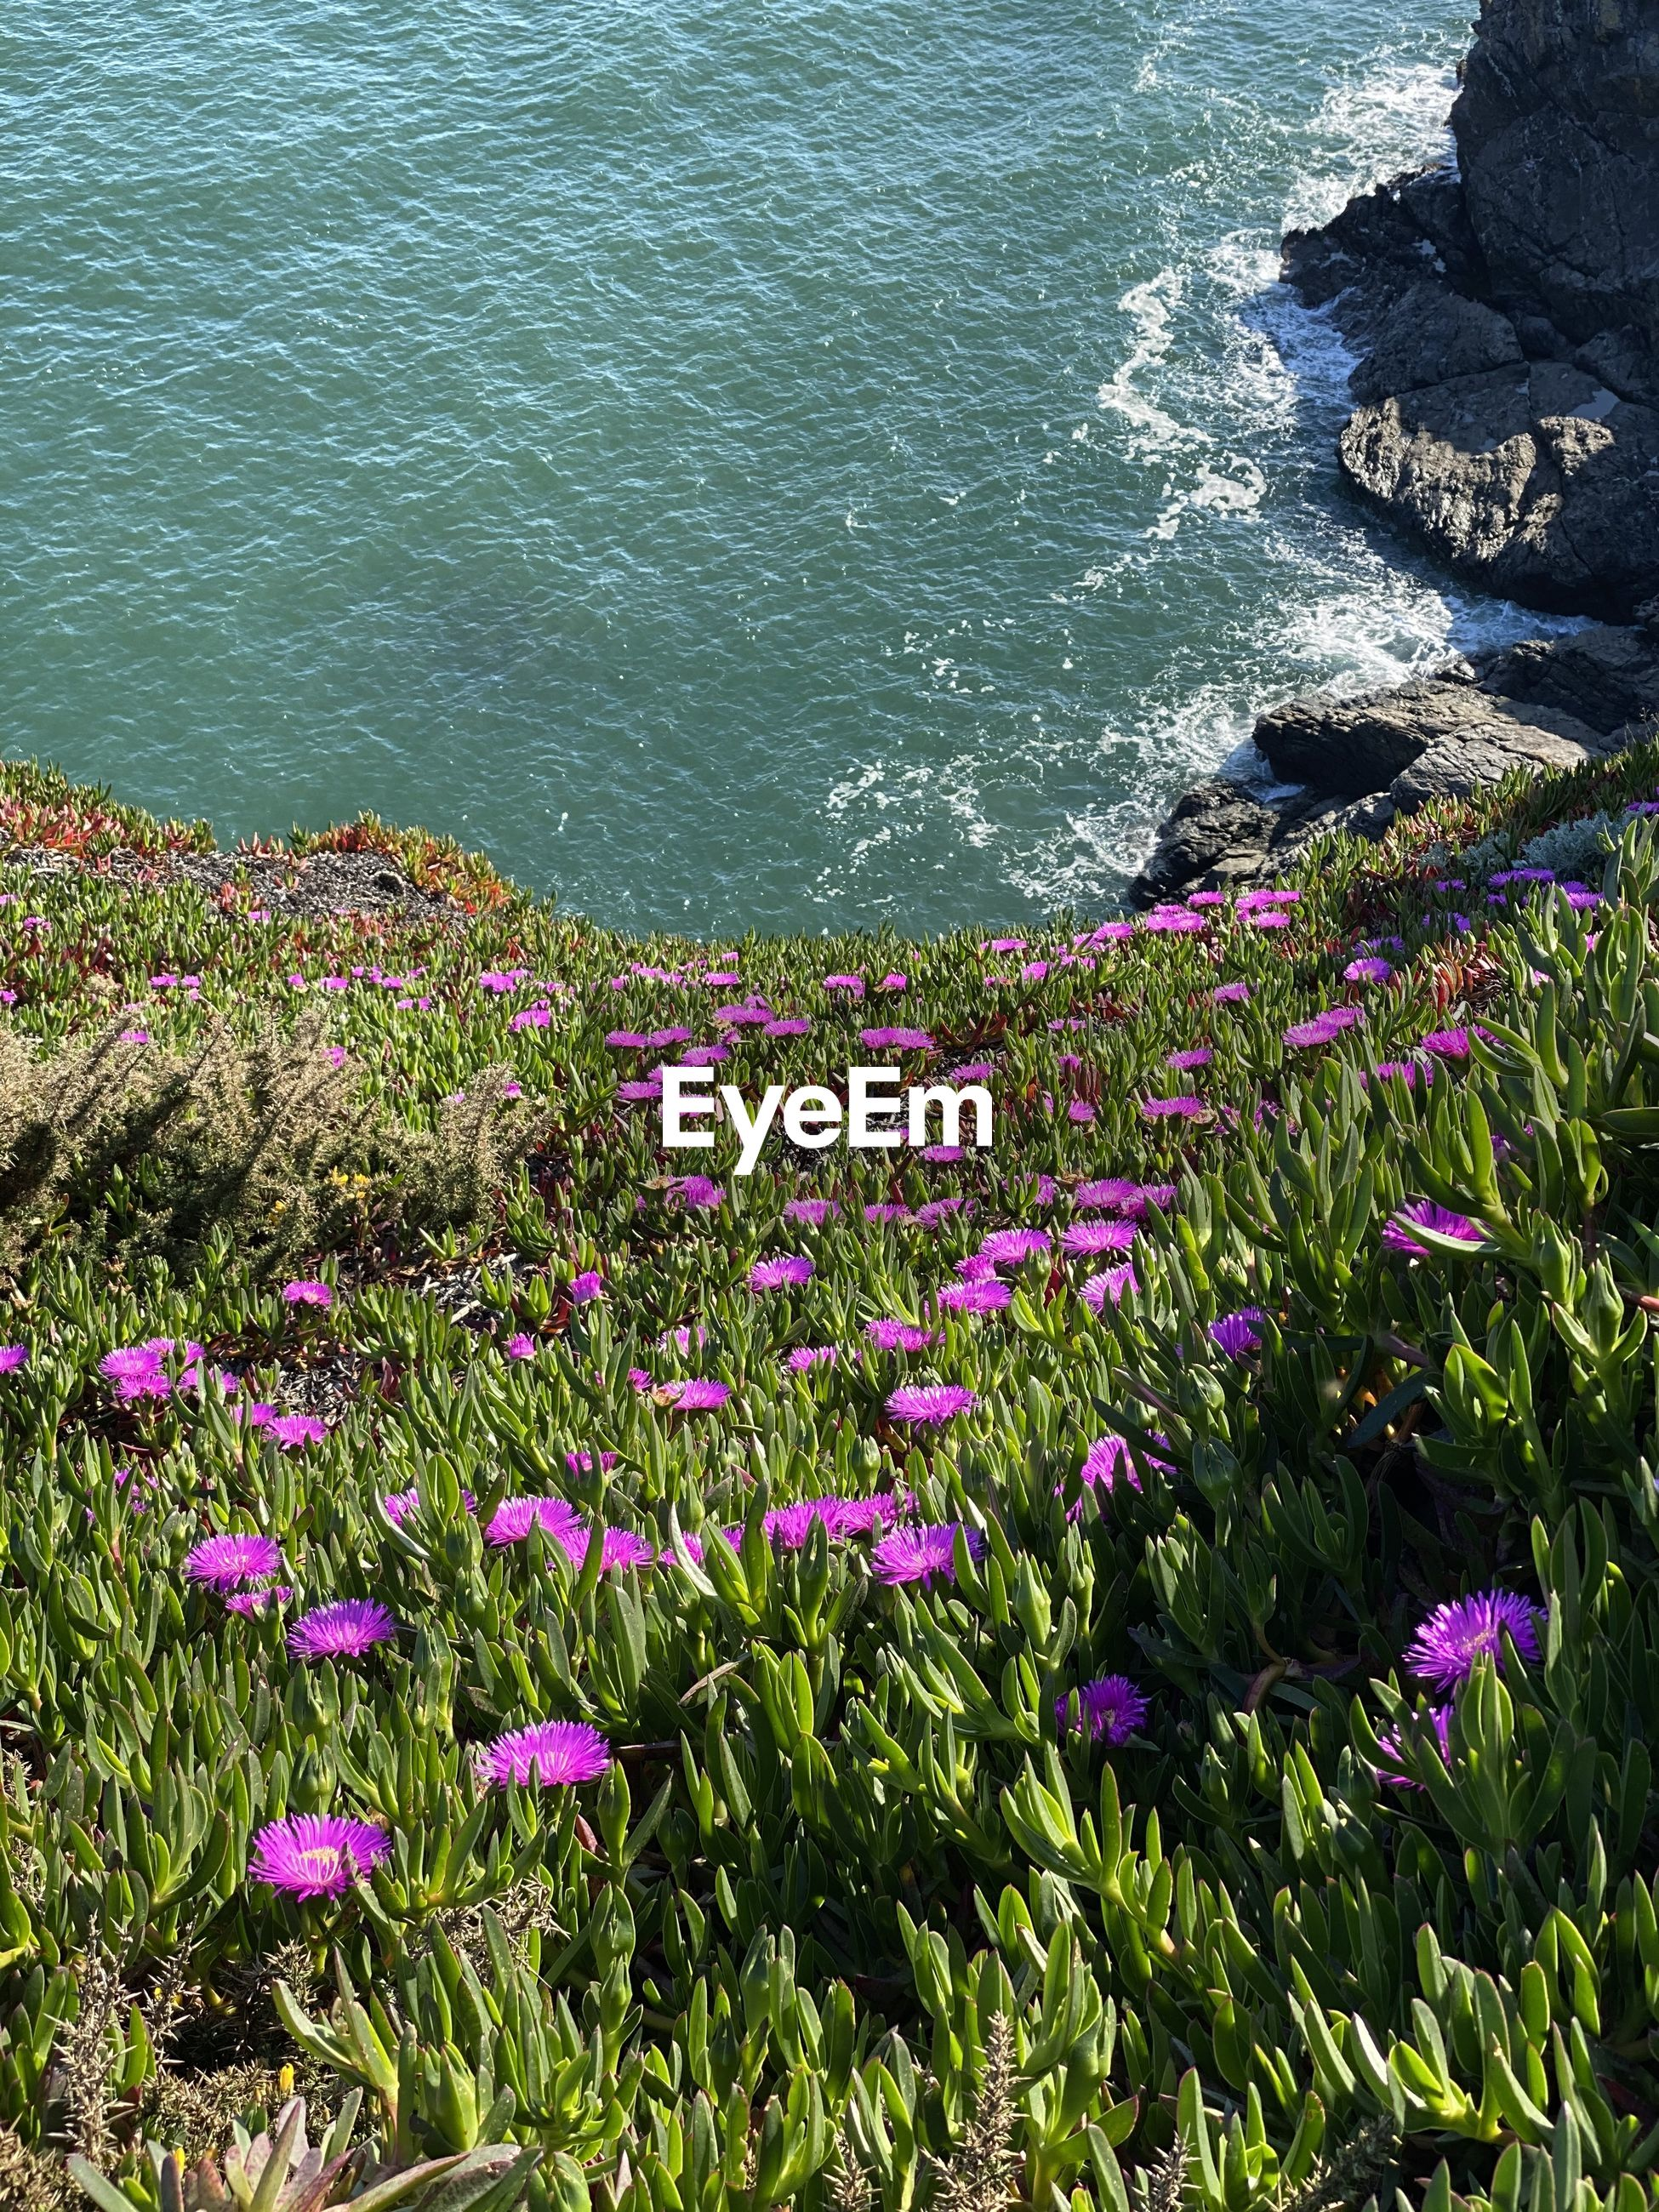 HIGH ANGLE VIEW OF PINK FLOWERING PLANTS AT SEA SHORE